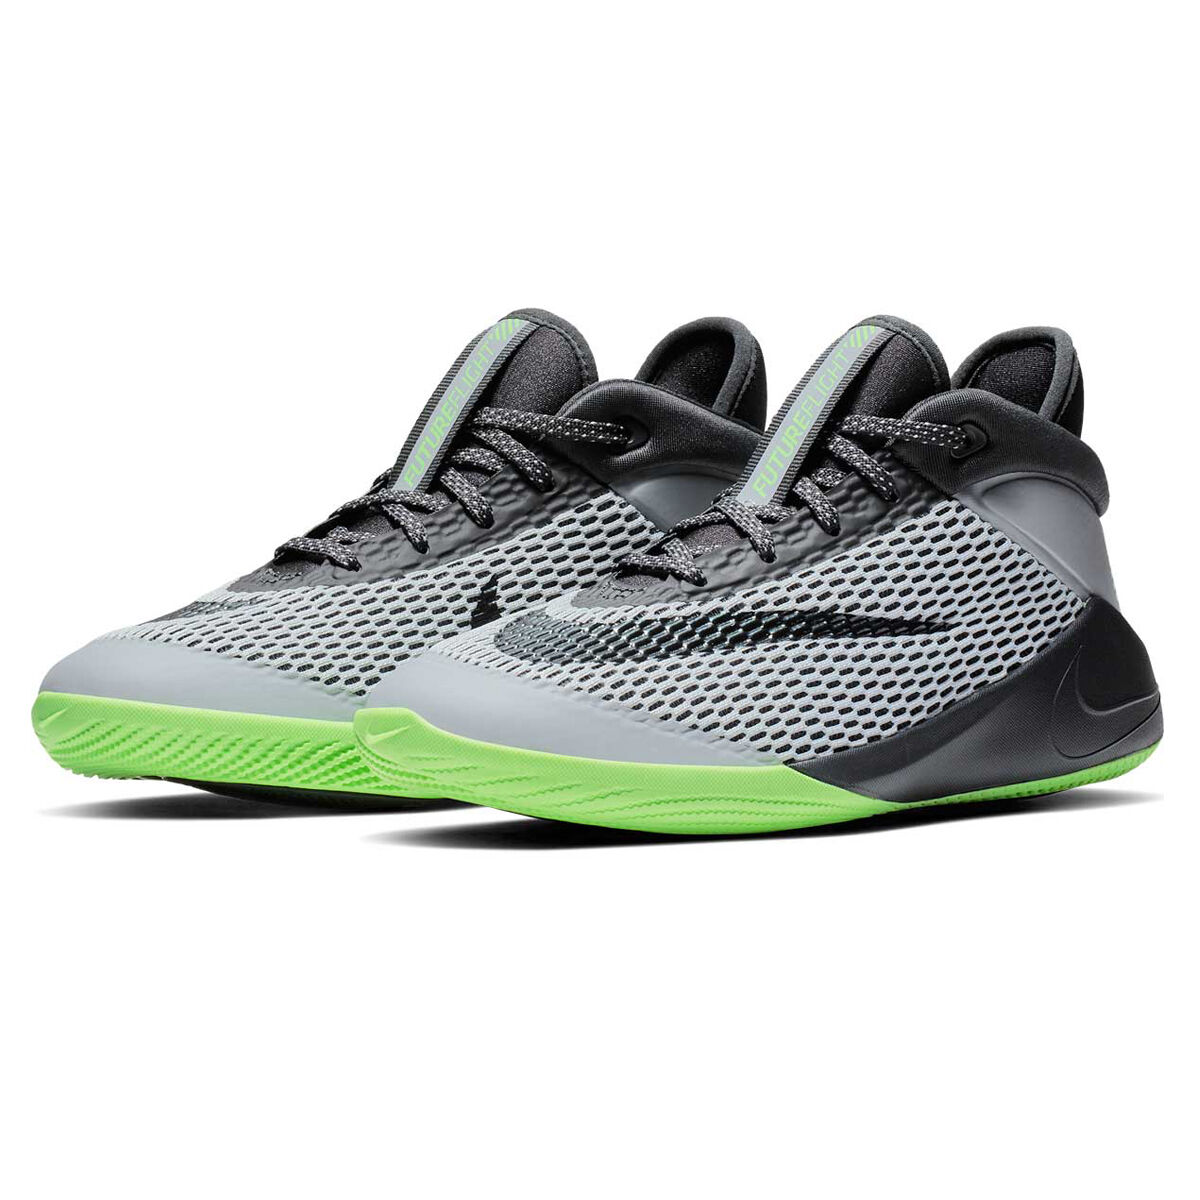 big kids nike future flight basketball shoes